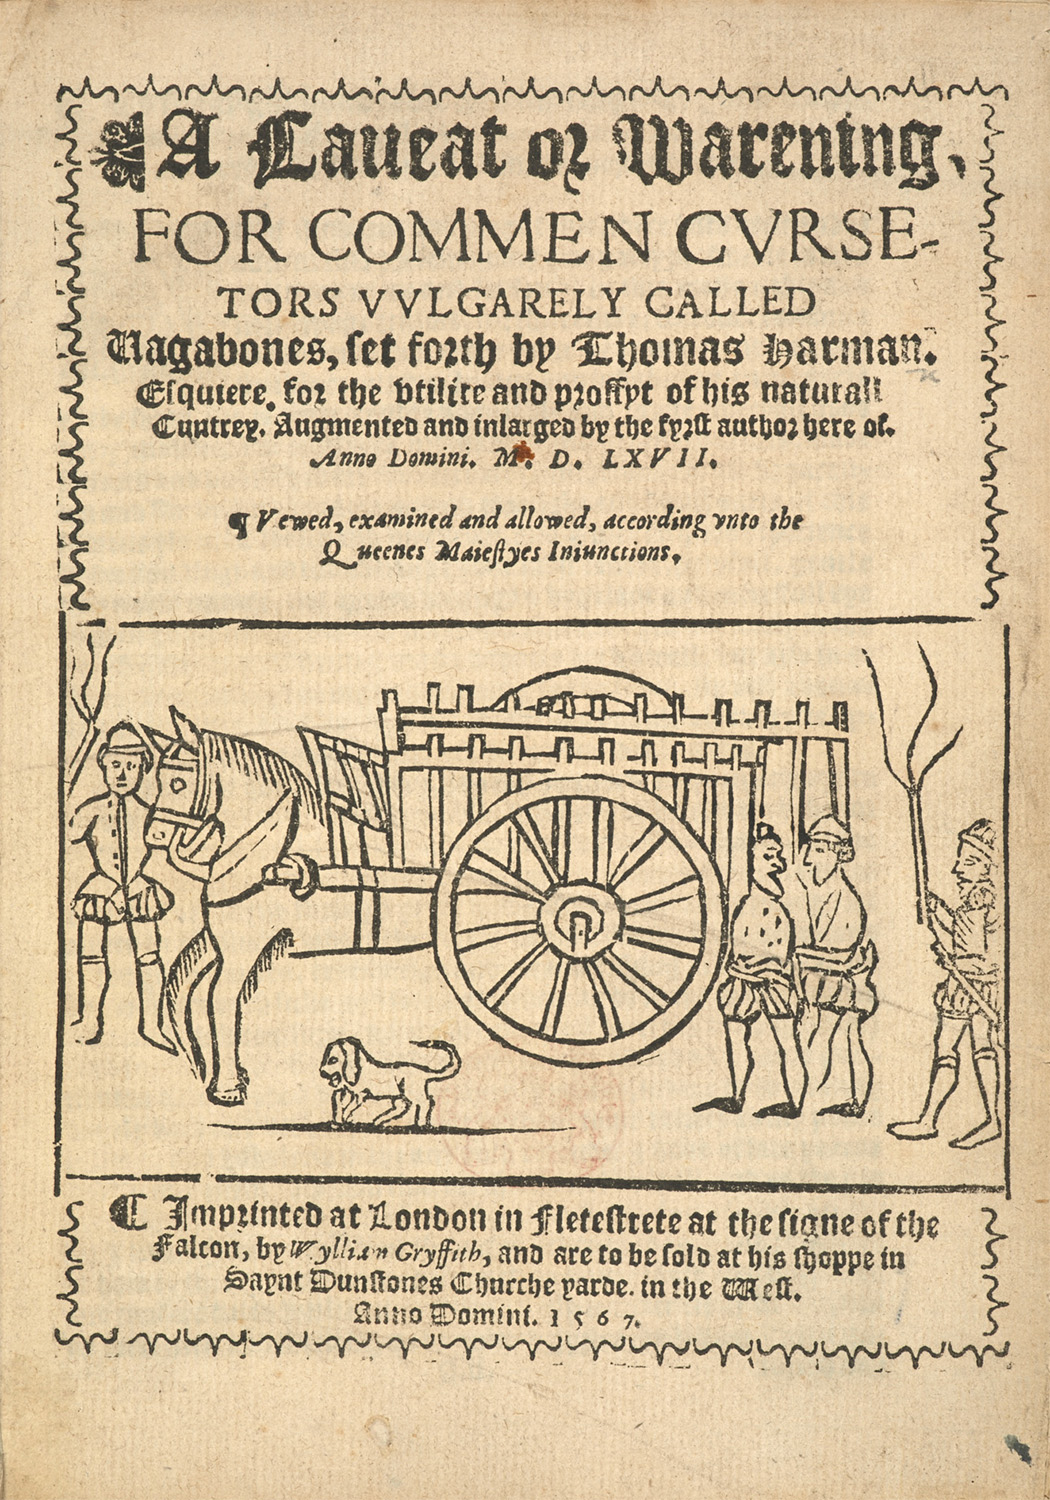 Title page of the 1567 reprint of Thomas Harman's A Caveat for Common Cursitors